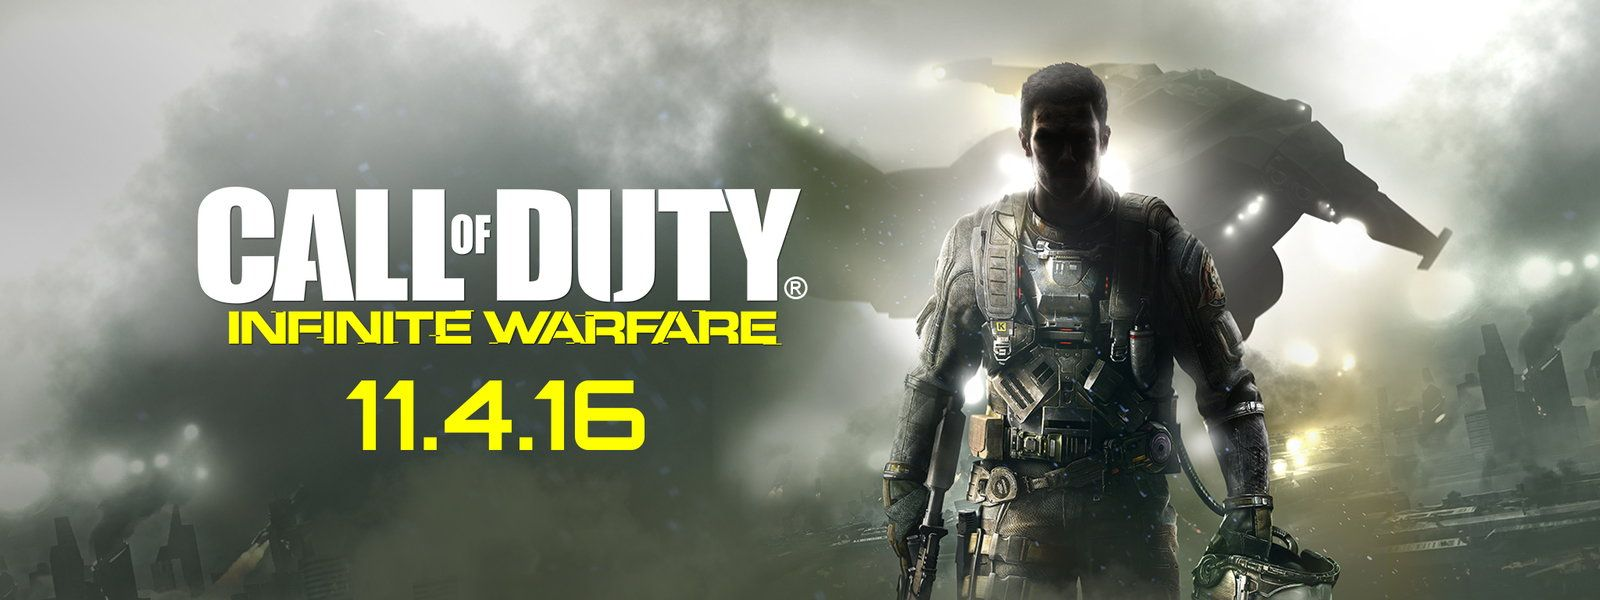 Leaked Call of Duty: Infinite Warfare trailer shows off inevitable ...